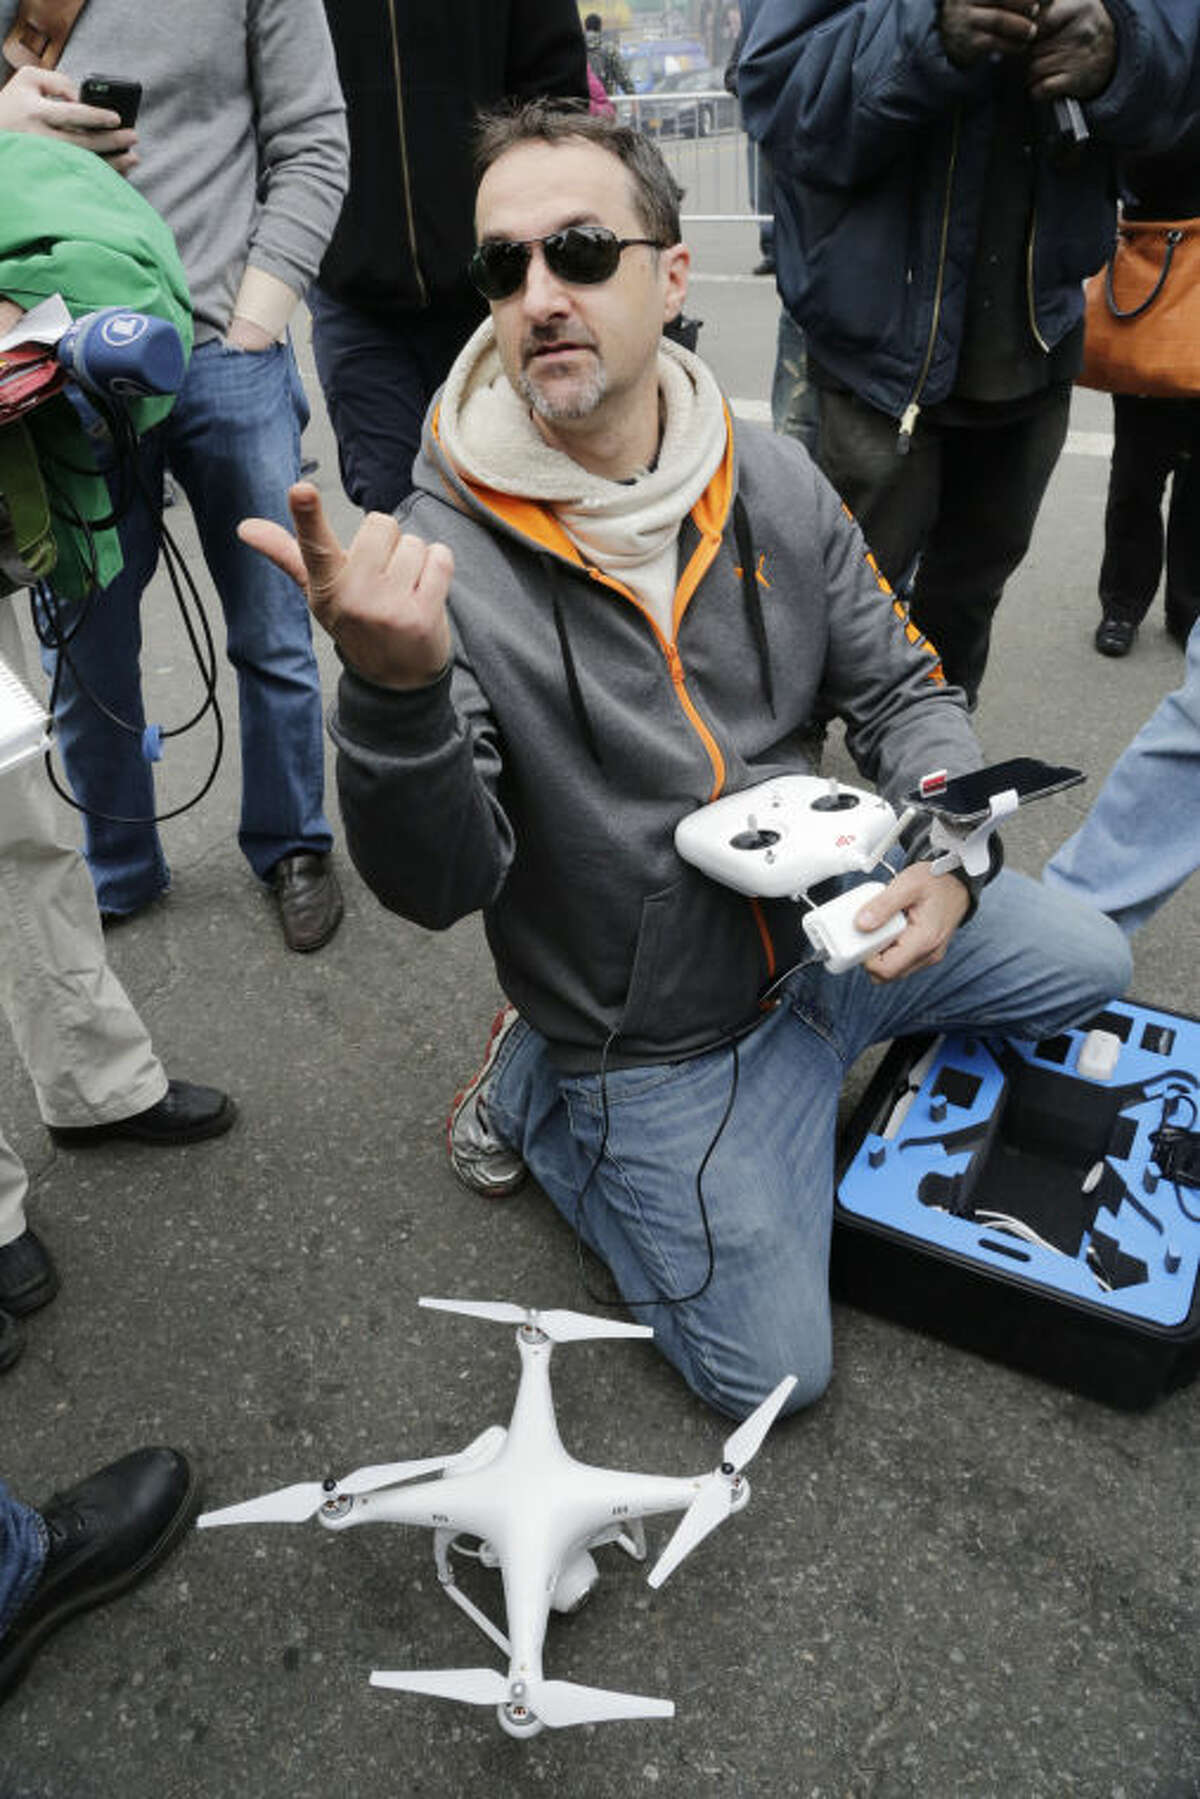 Brian Wilson packs away the drone that he was flying to video the scene of an explosion that leveled two apartment buildings in East Harlem, Wednesday, March 12, 2014, in New York. Wilson says he uses the aerial drone to document buildings, weddings and news events. (AP Photo/Mark Lennihan)